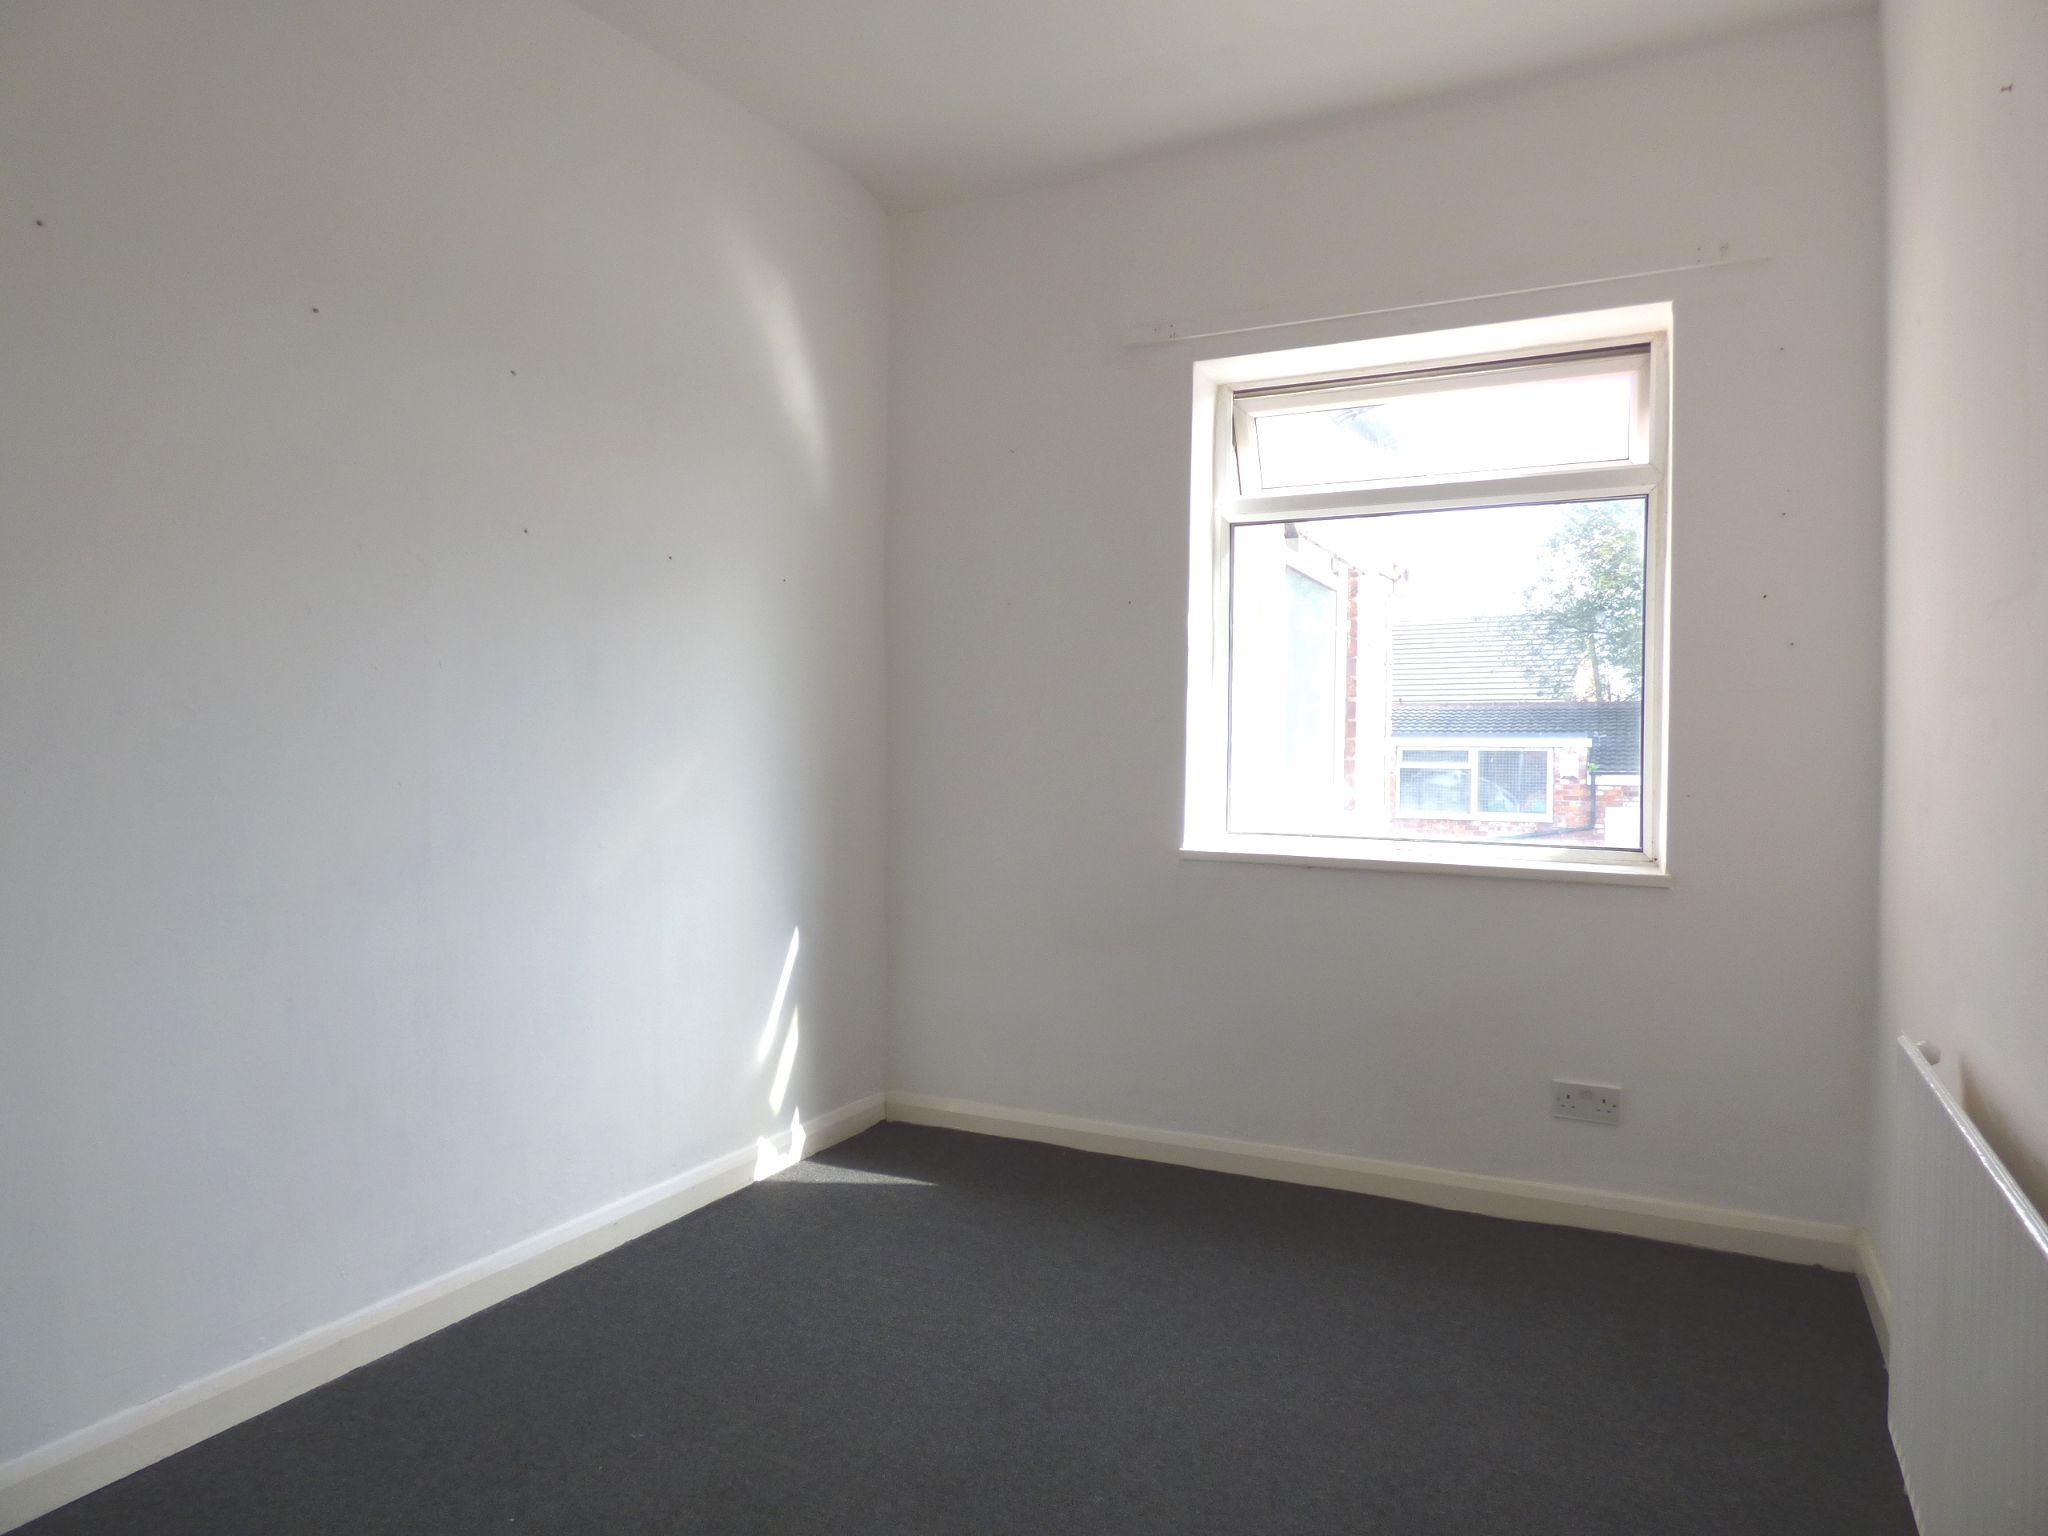 Commercial Property For Sale - Photograph 6